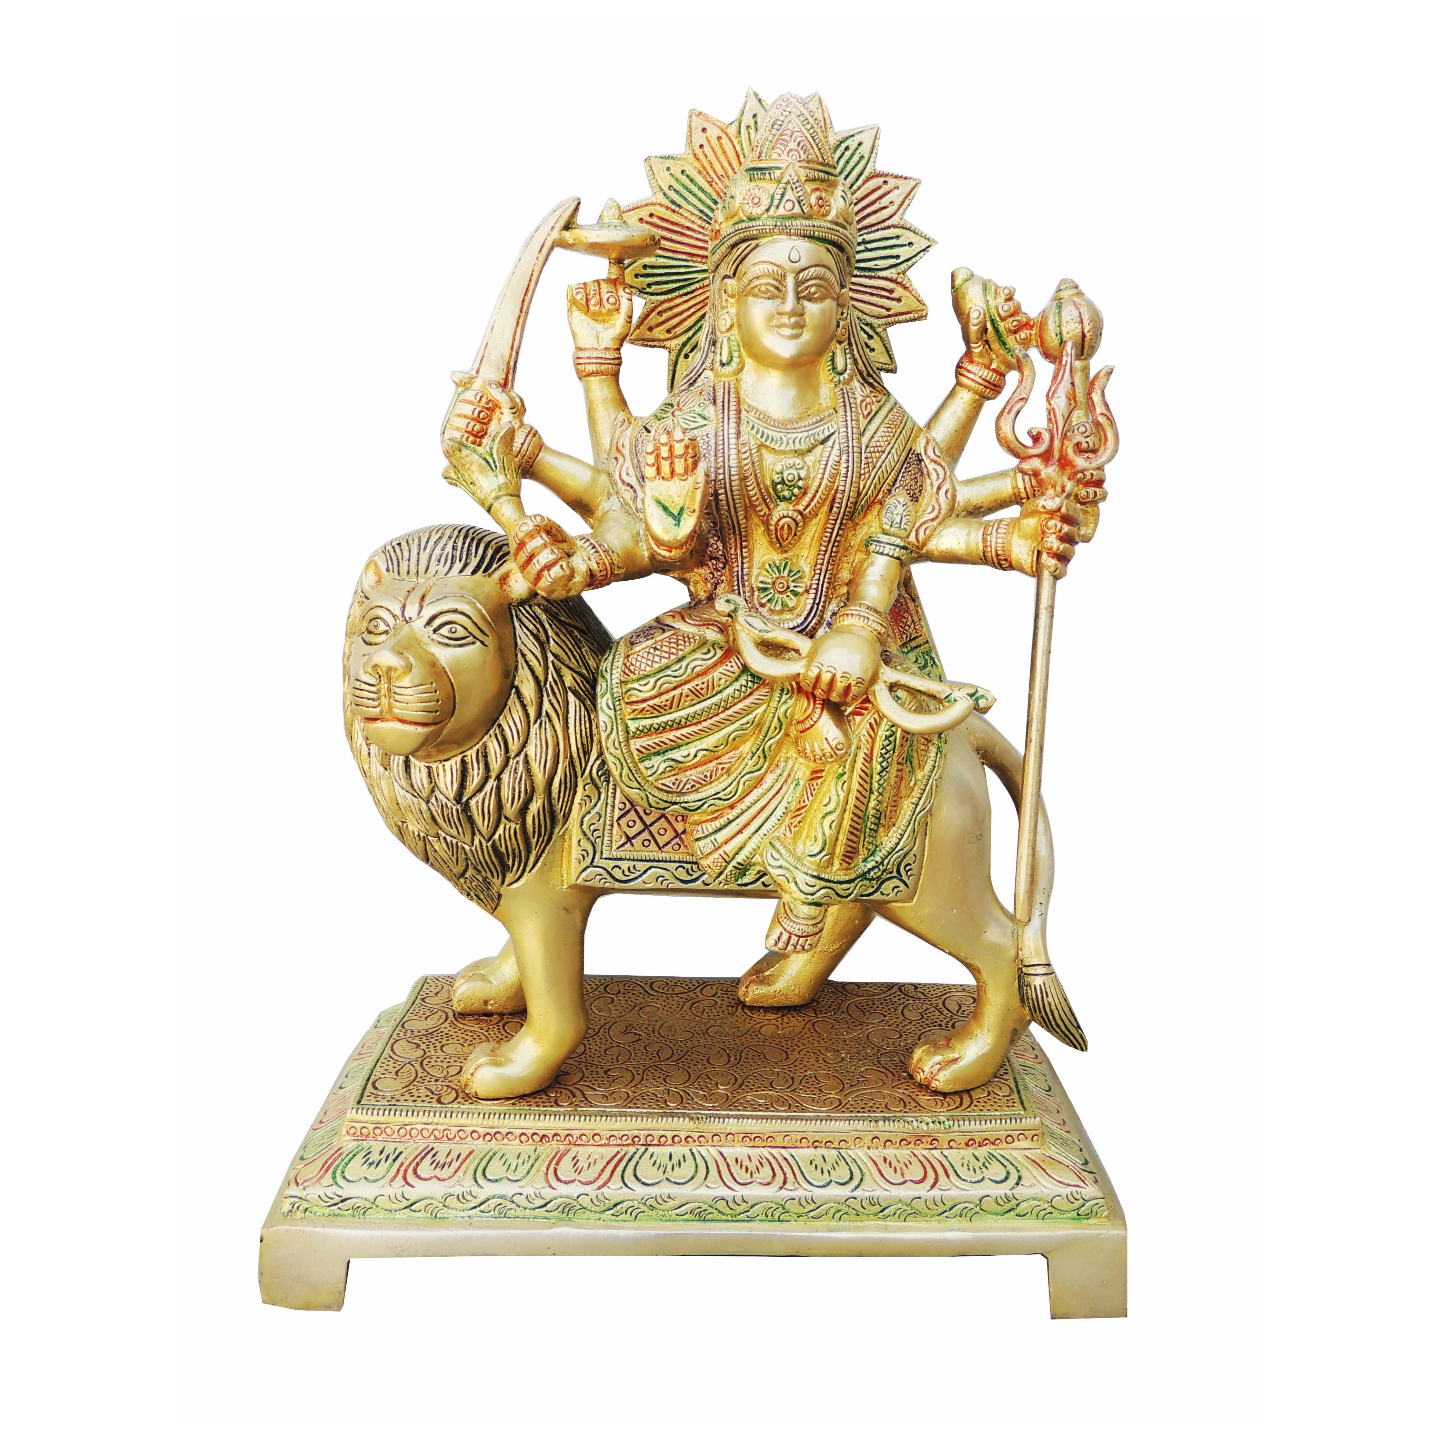 Brass Durga Ji Statue/Murti/Idol With Color Lacquer Finish - 12.5 Inch (BS937 C)